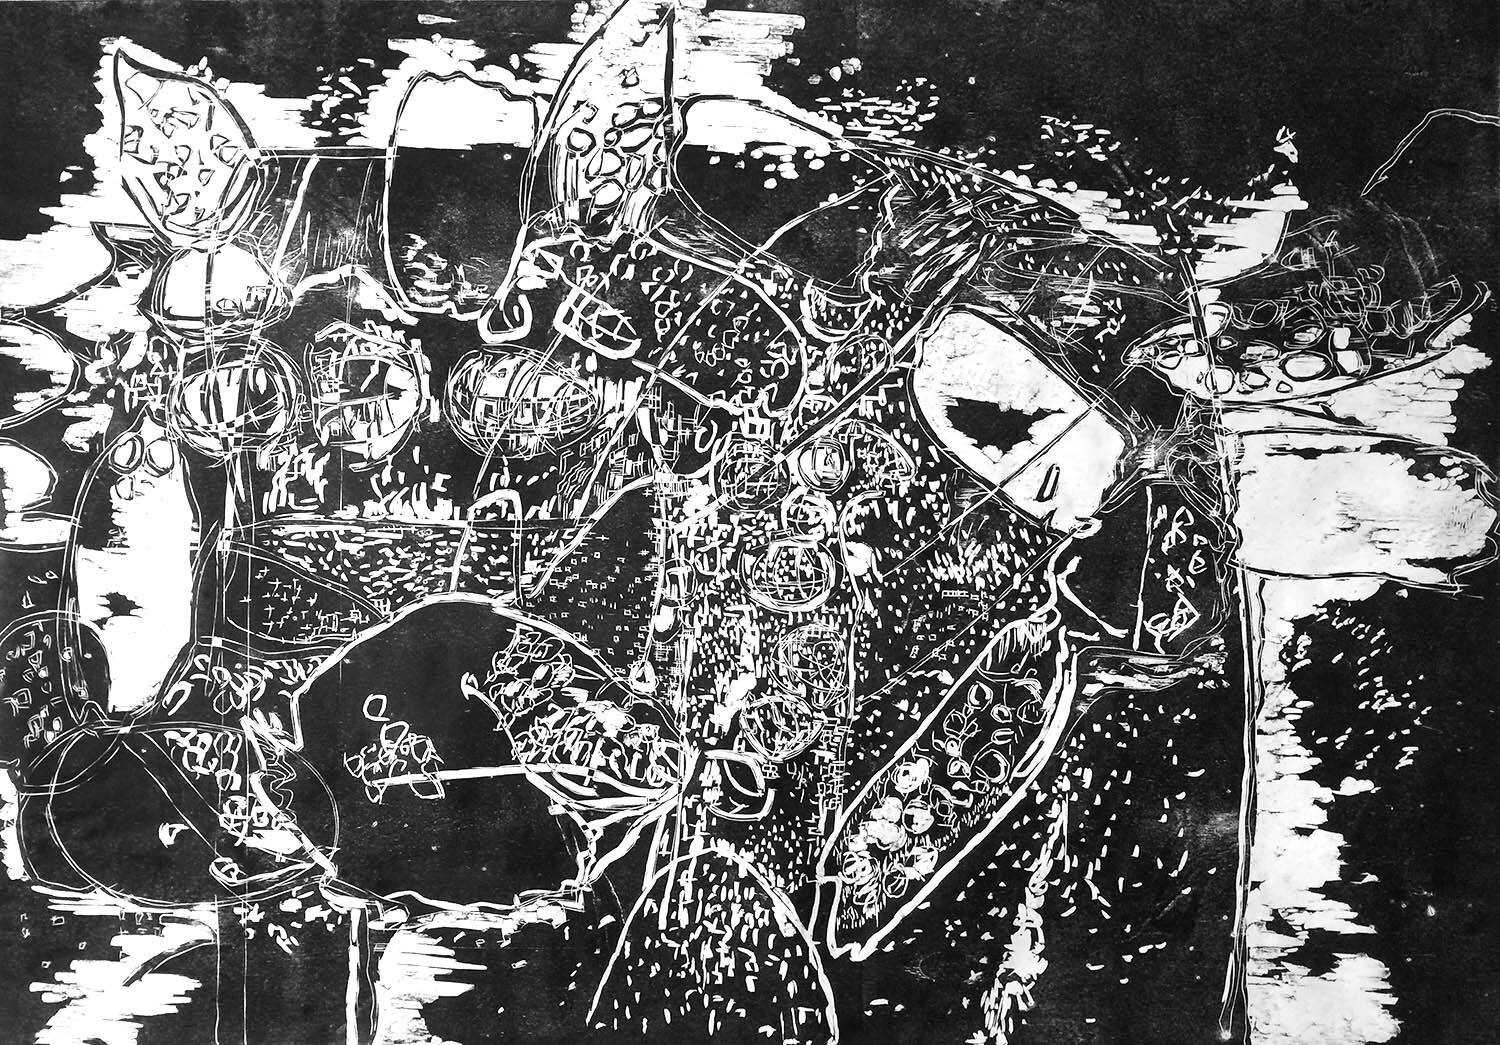 Surge, ed. 1/5, hand-printed woodcut on paper, 42 x 60 in.